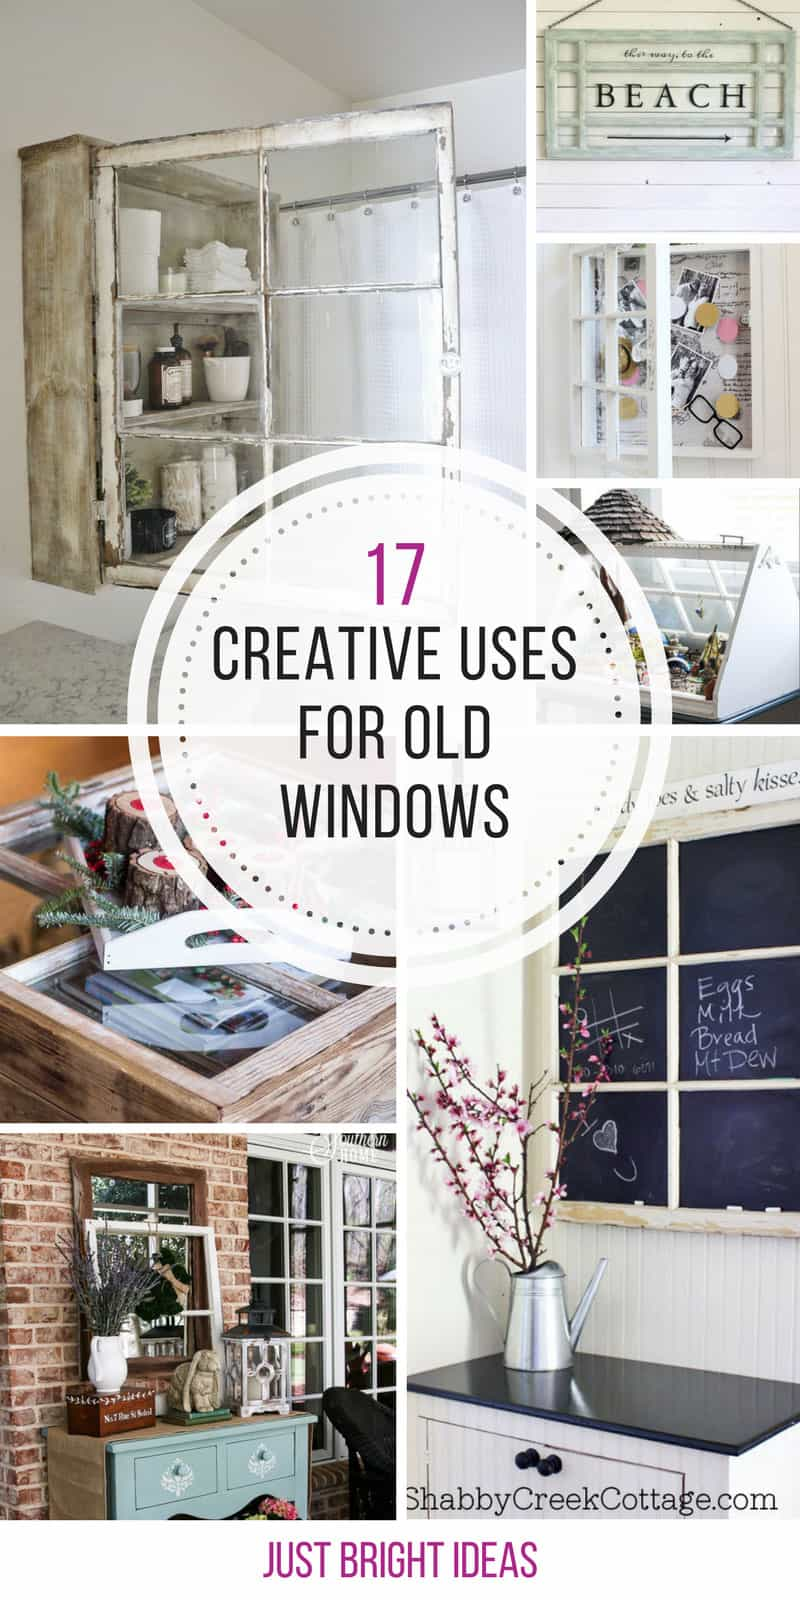 These creative uses for old windows are brilliant! Thanks for sharing!